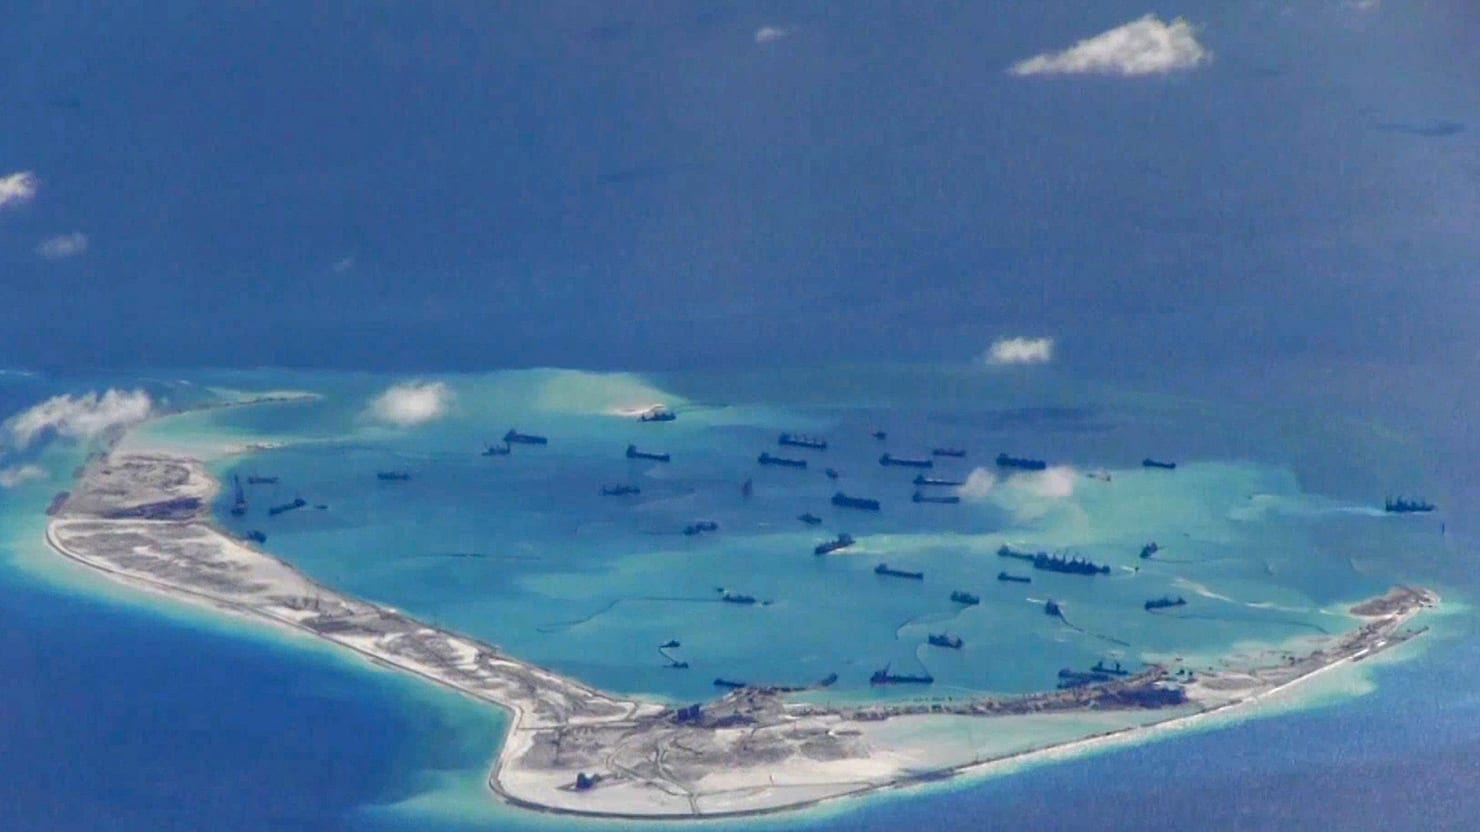 History's Next Great War Zone: The South China Sea